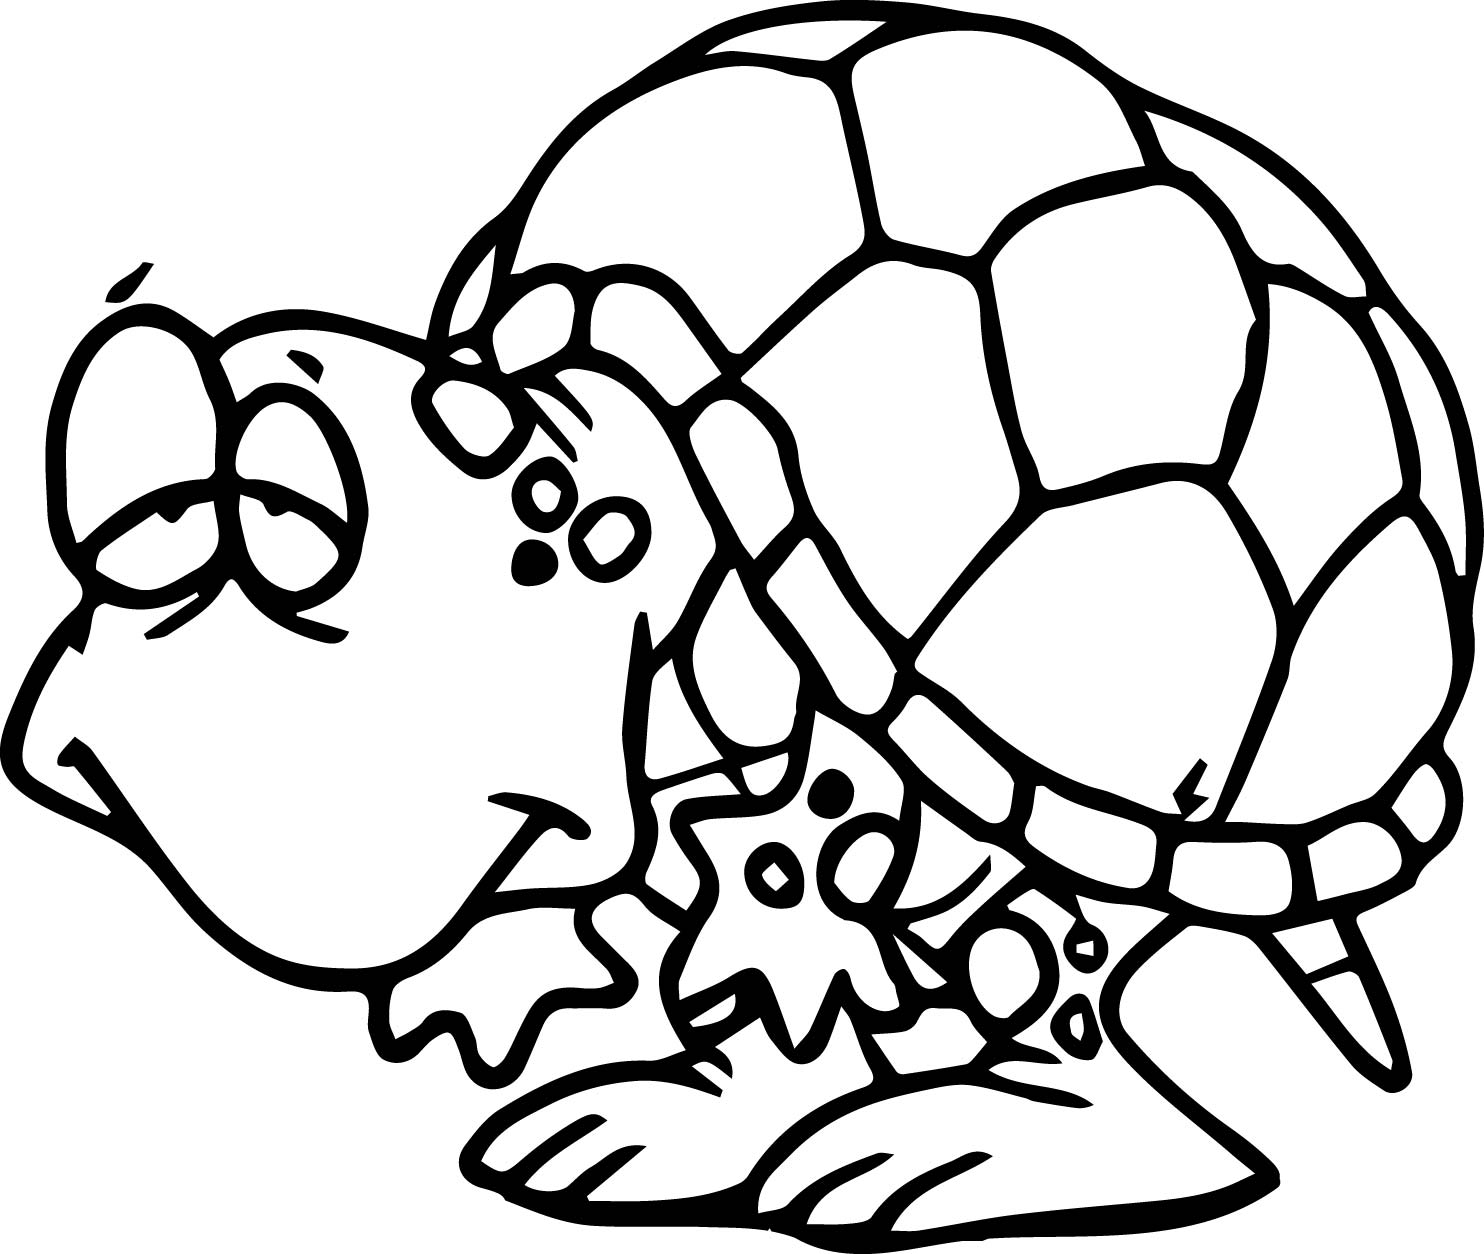 1484x1254 Slow Tortoise Turtle Coloring Page Wecoloringpage